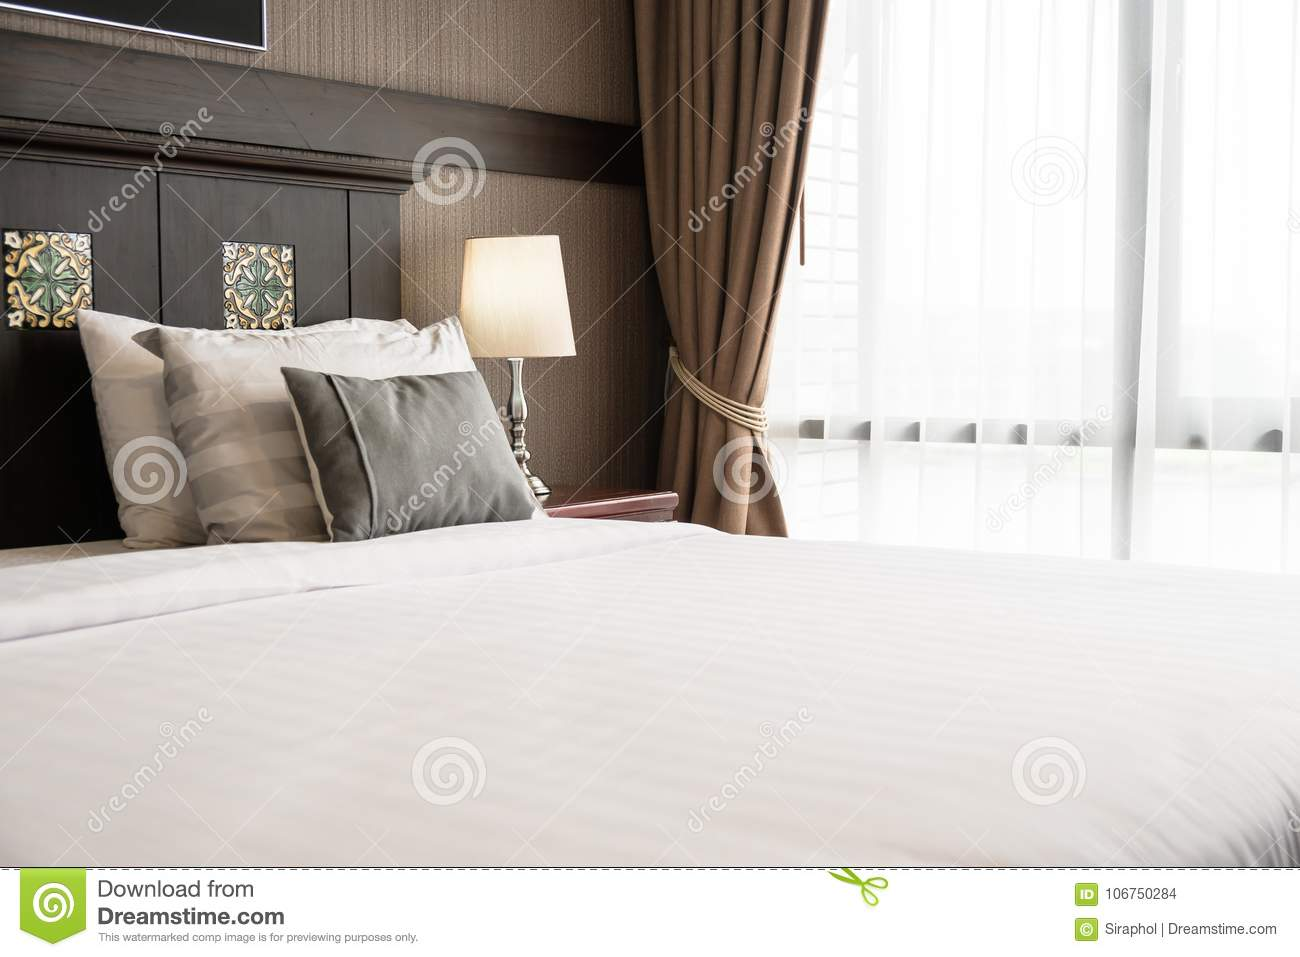 Comfort Pillow On Bed Stock Photo Image Of Pillows 106750284